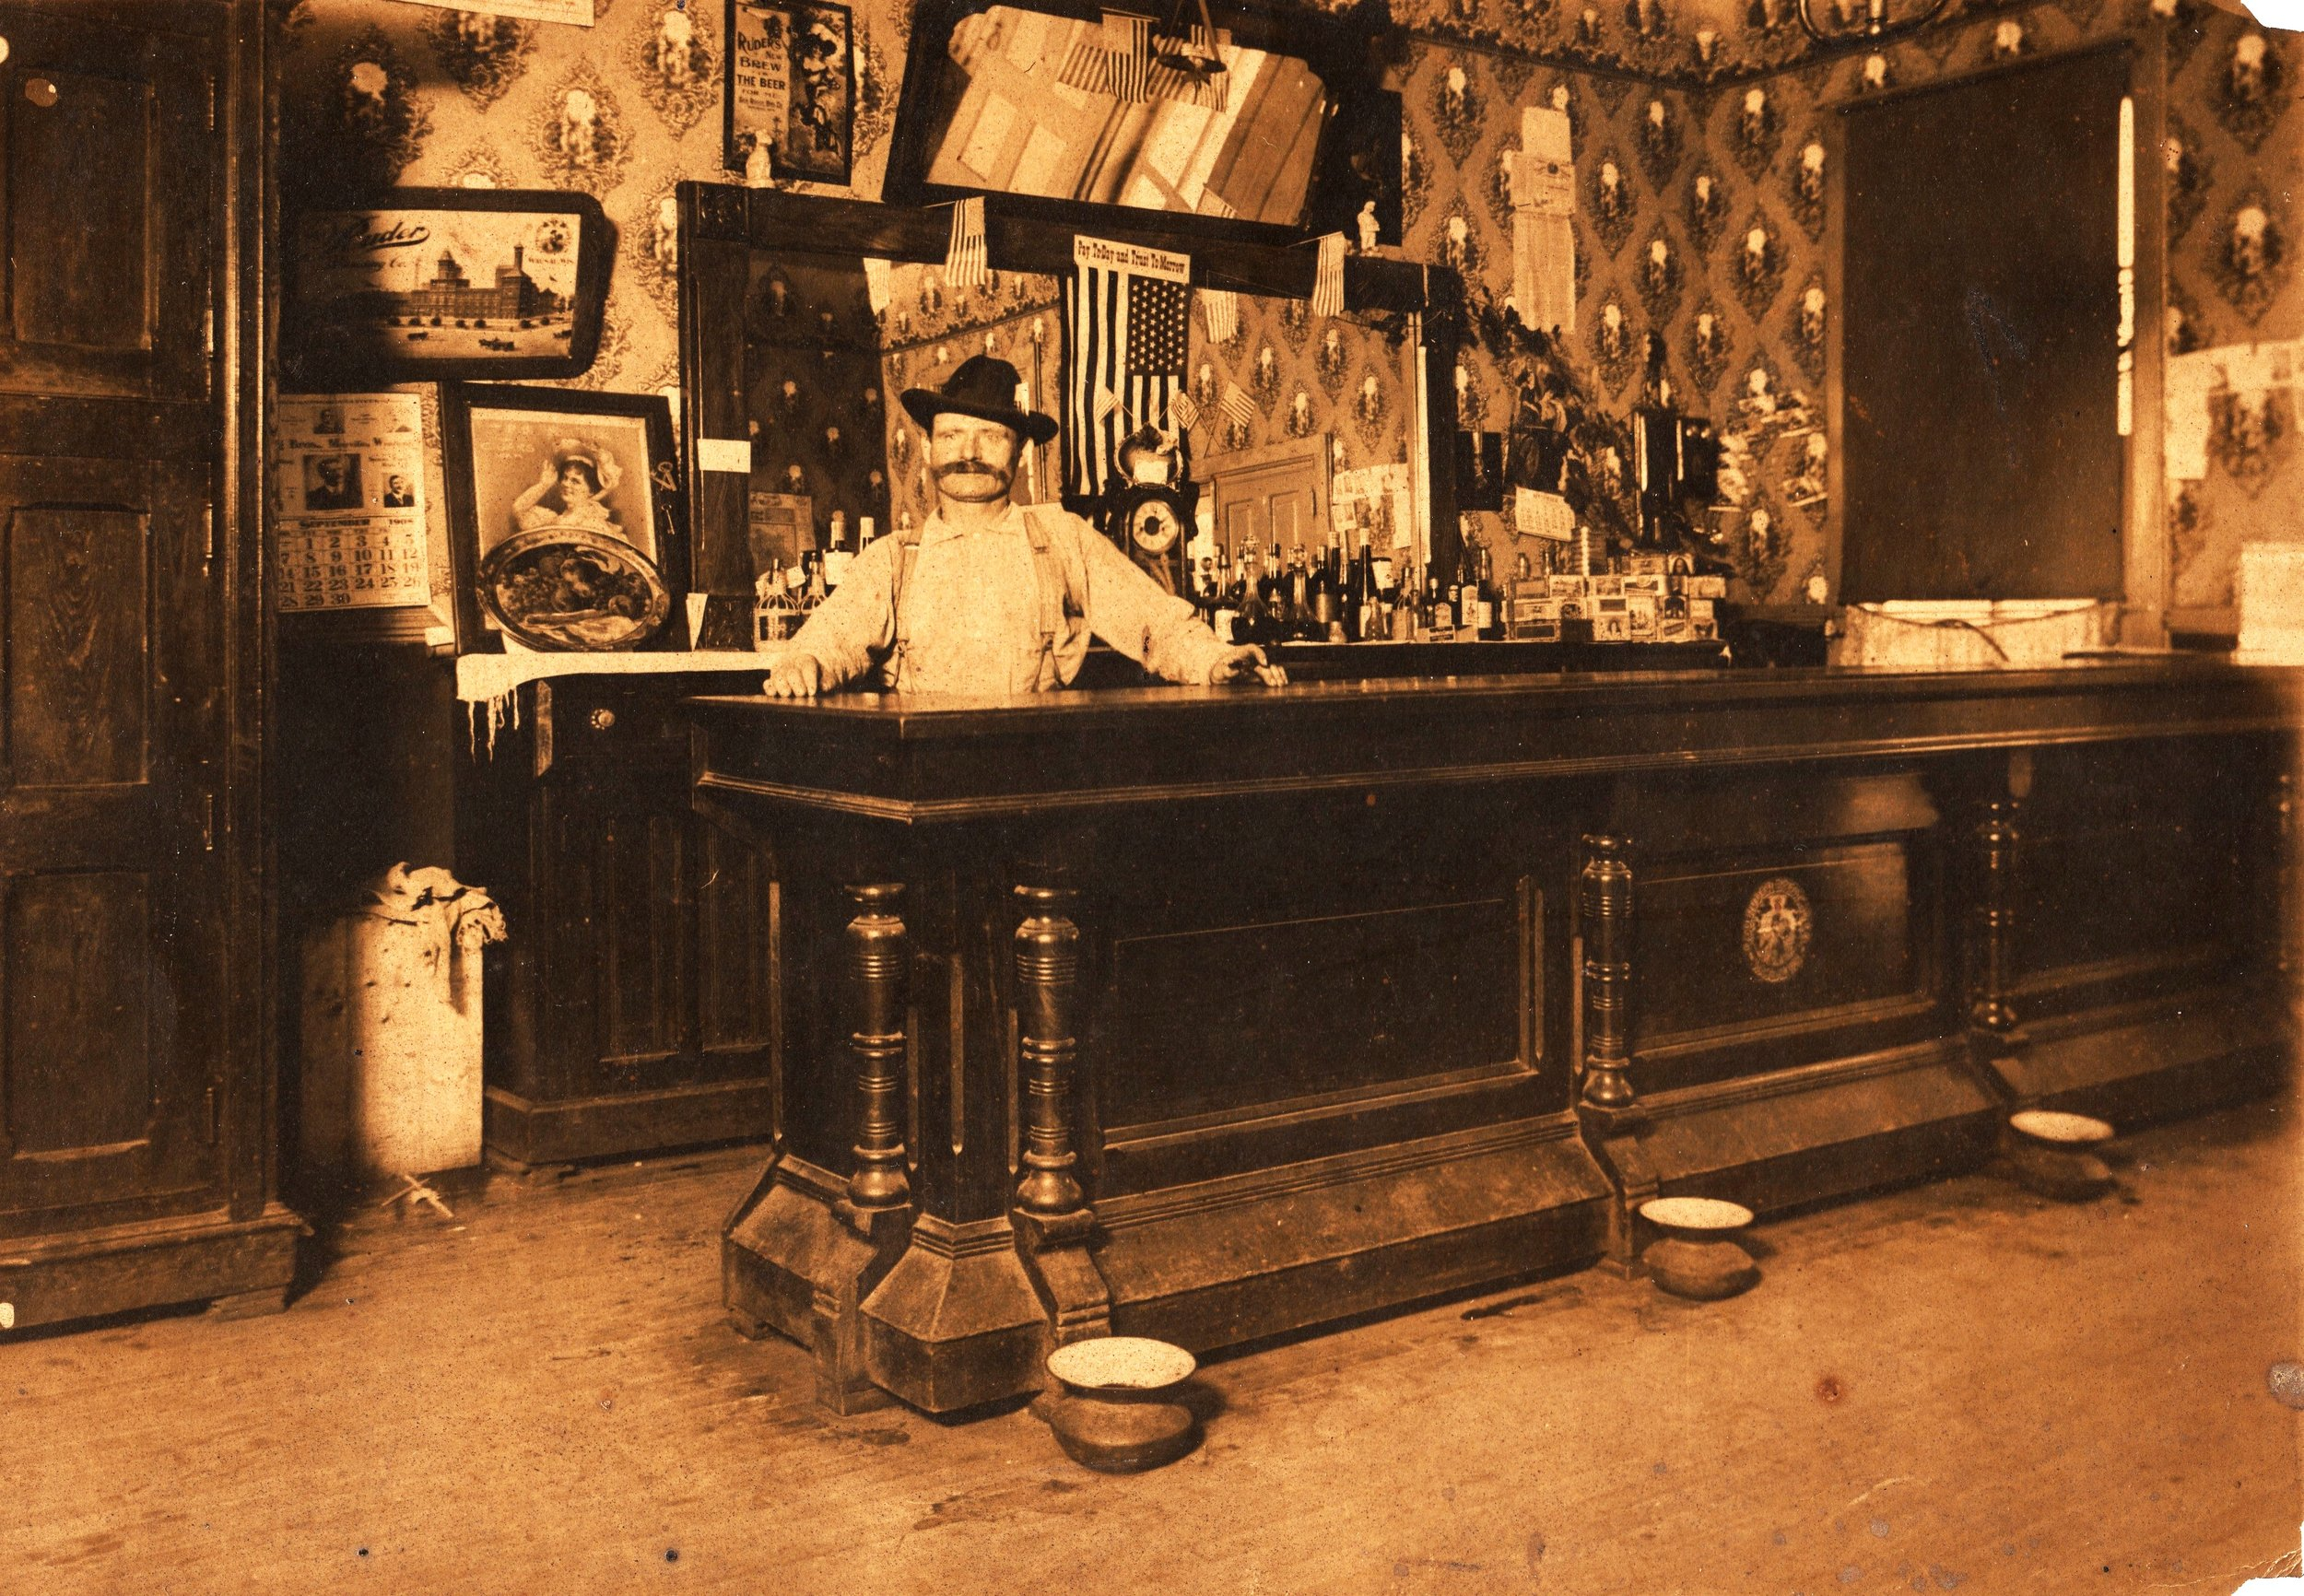 williamschmidtsaloon1908_cropped